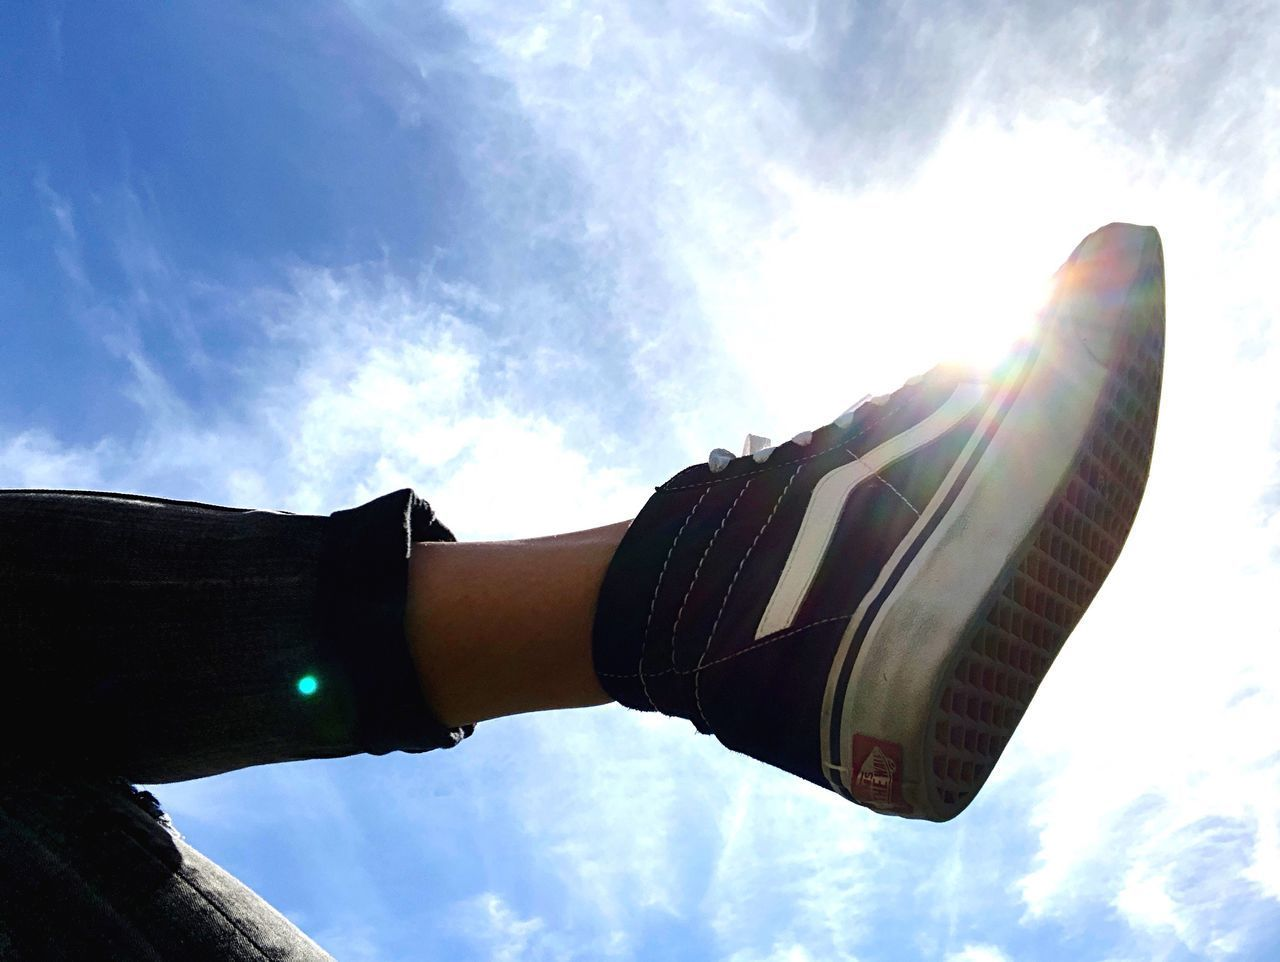 sunbeam, sky, lens flare, low angle view, cloud - sky, sun, sunlight, human hand, one person, day, outdoors, real people, human body part, men, close-up, young adult, people